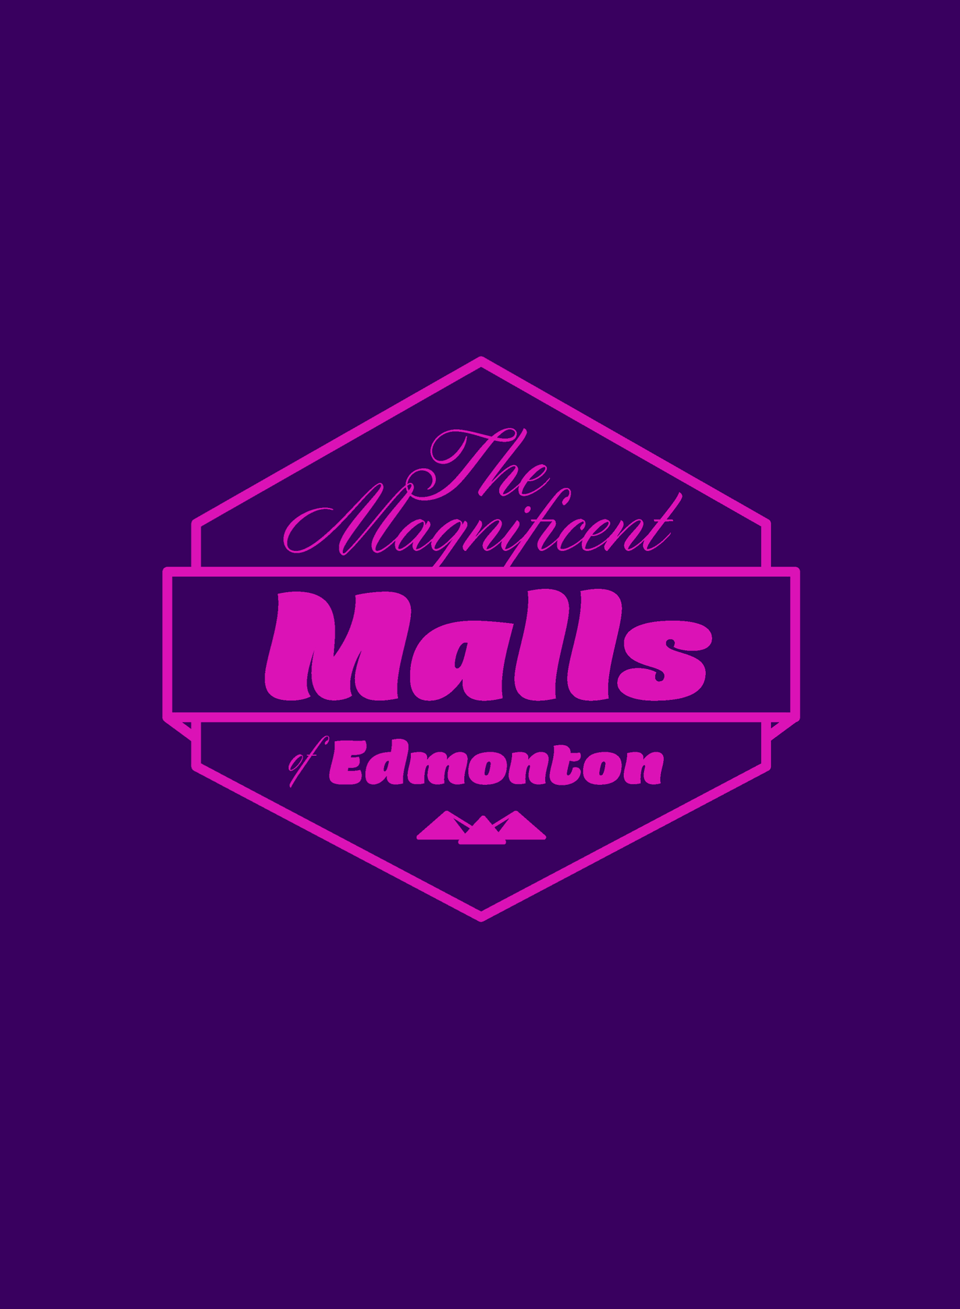 A purple cover with stylized pink lettering, 'The Magnificent Malls of Edmonton.'